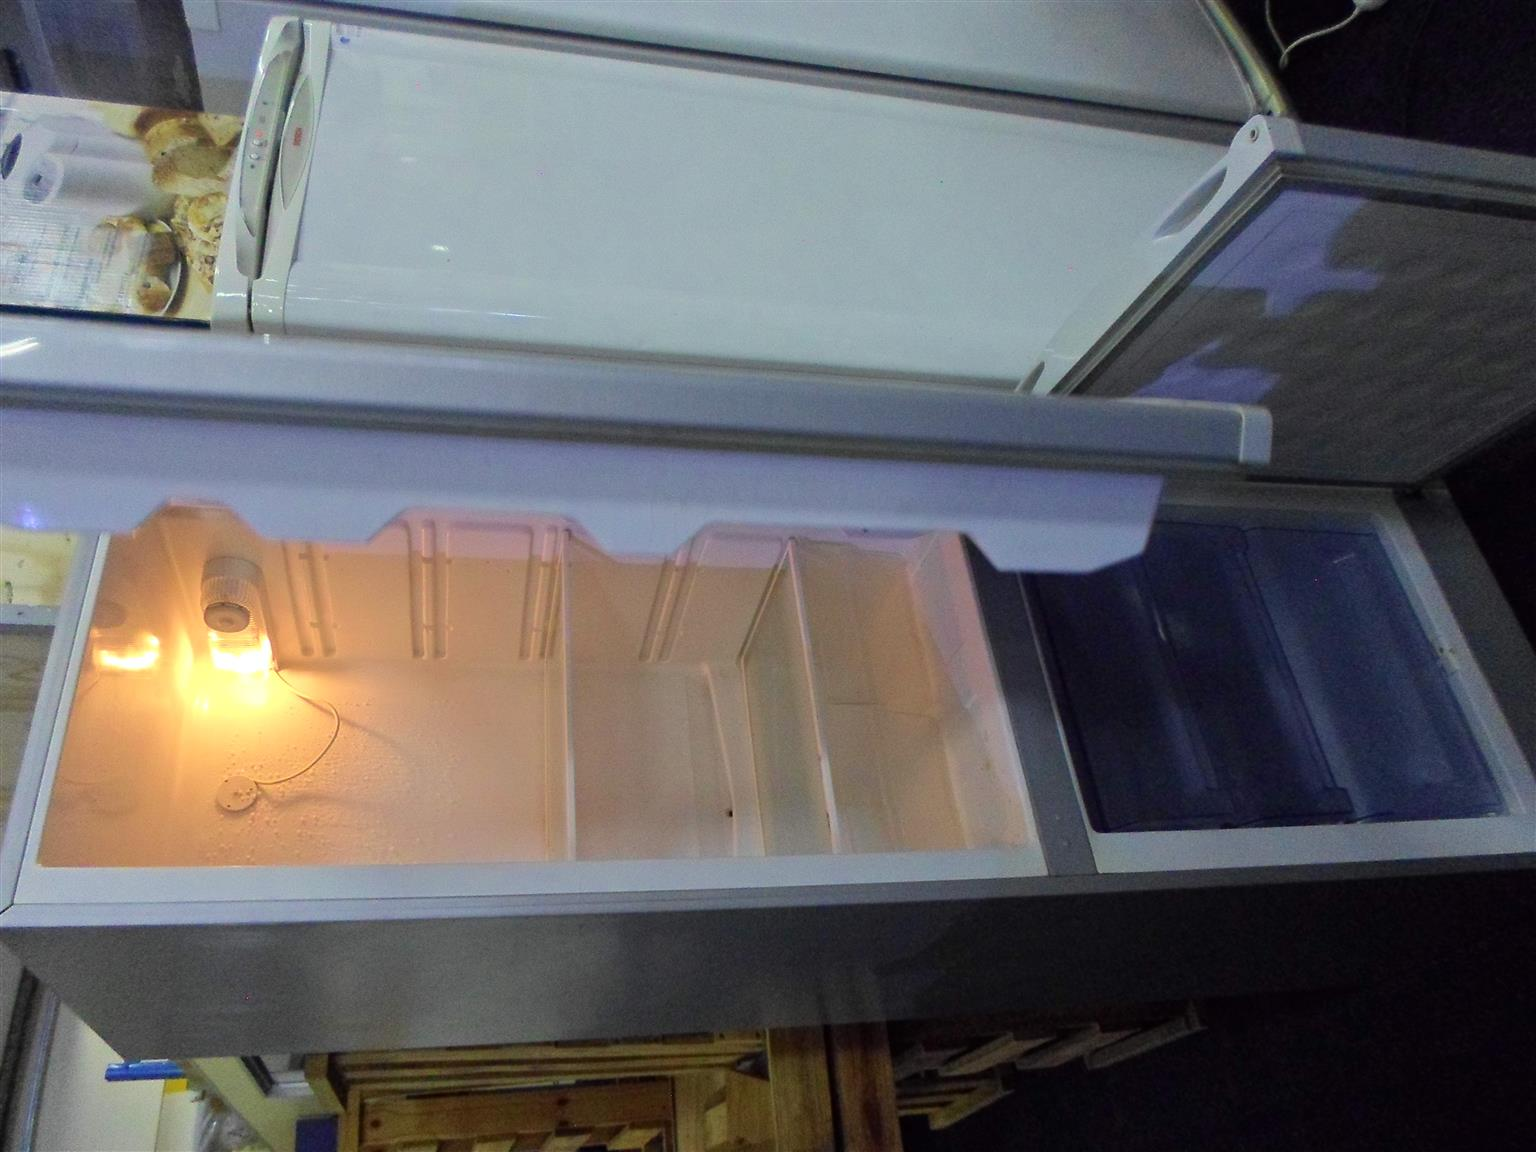 Telefunken Fridge / Freezer